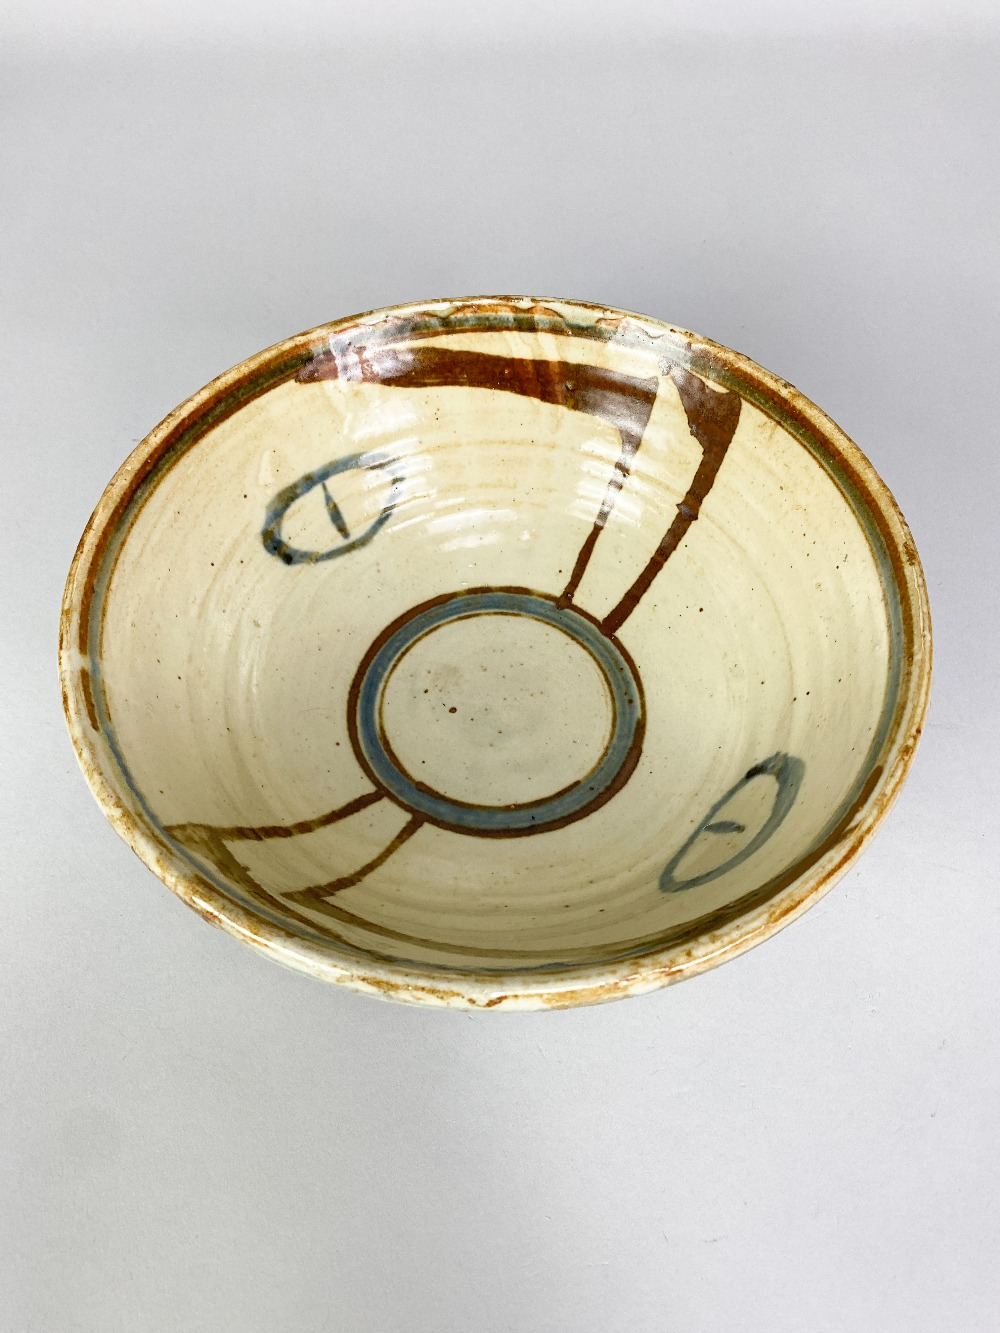 MICHAEL CARDEW (1901-1983) for Wenford Bridge Pottery; a stoneware footed bowl with iron and - Image 3 of 5